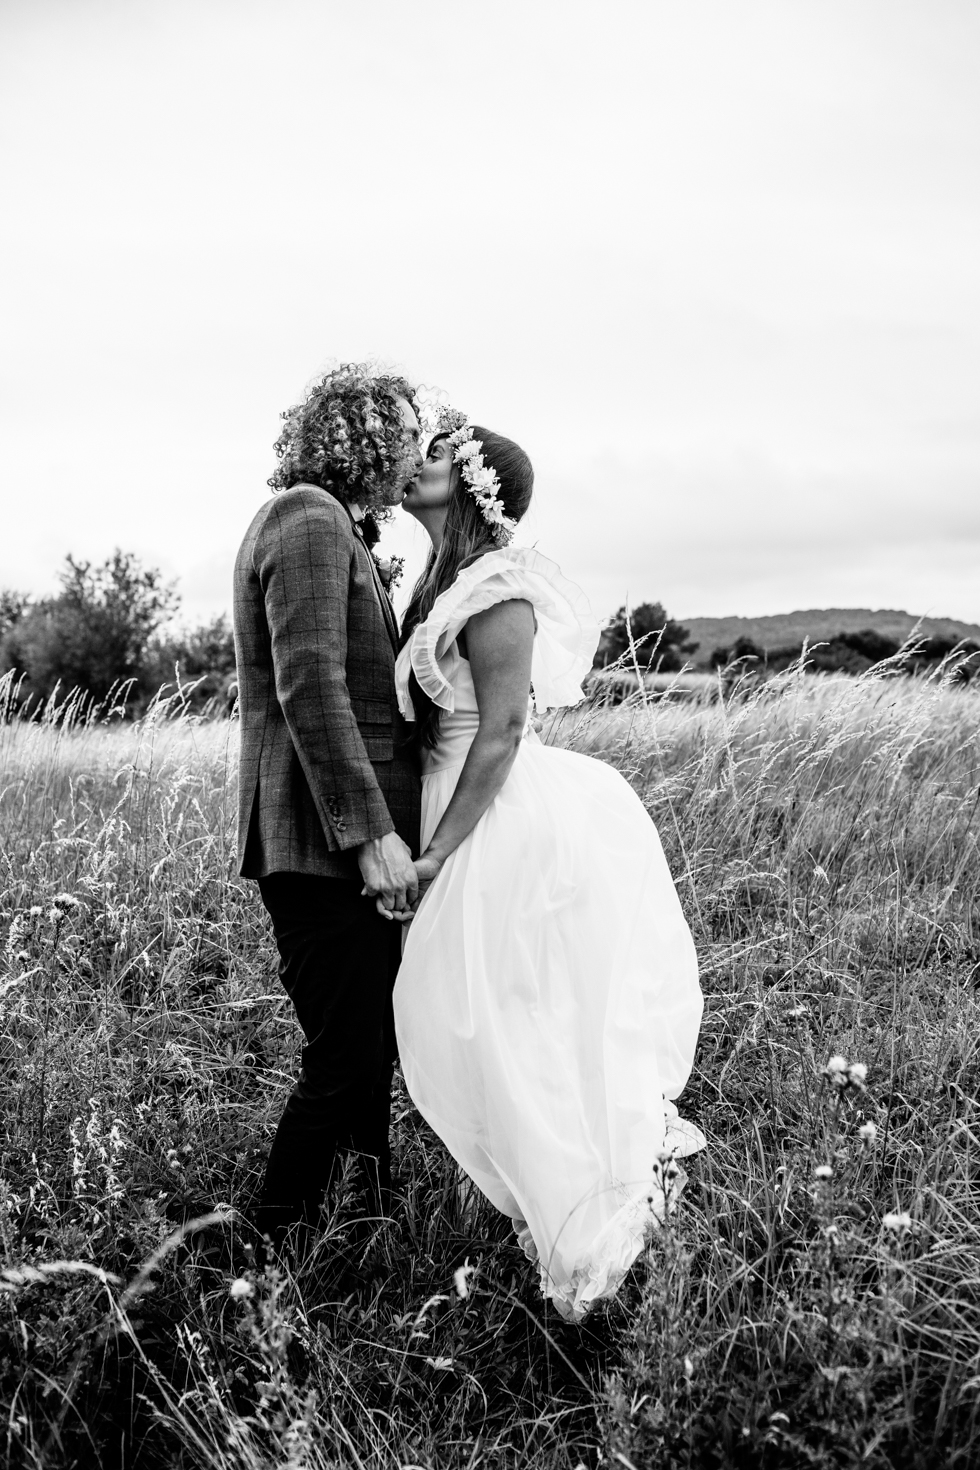 couple portrait of bohemian bride and long haired groom walking through fields at festival wedding